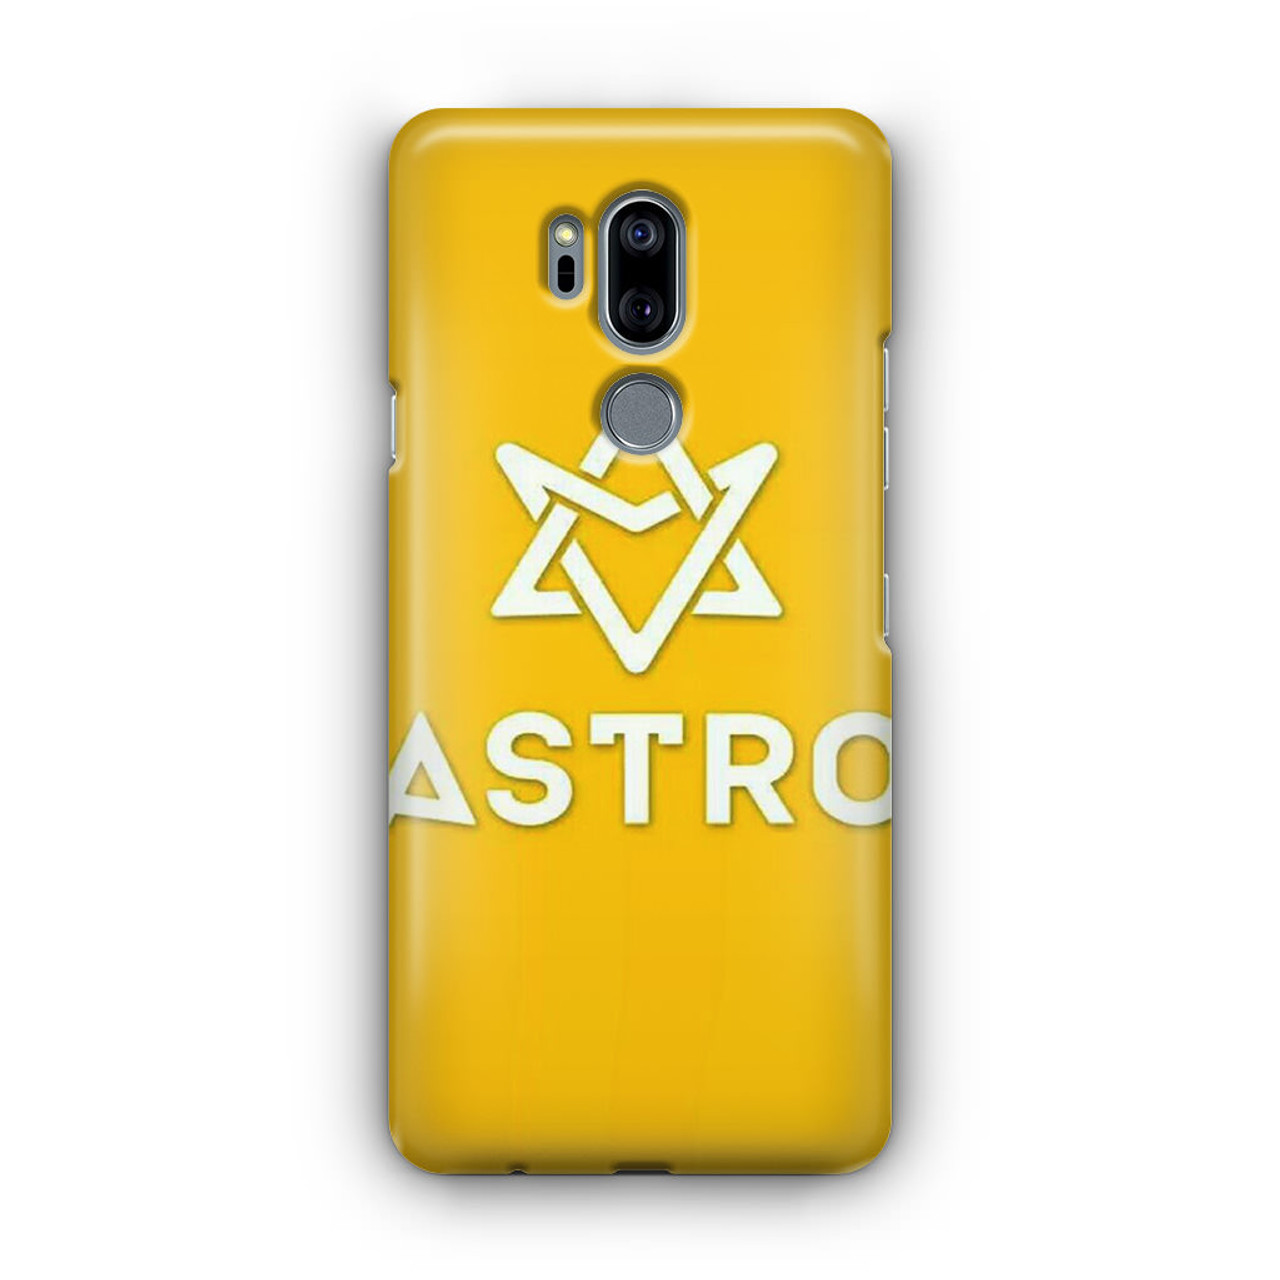 new product b0a52 18d90 Astro KPop LG G7 Case